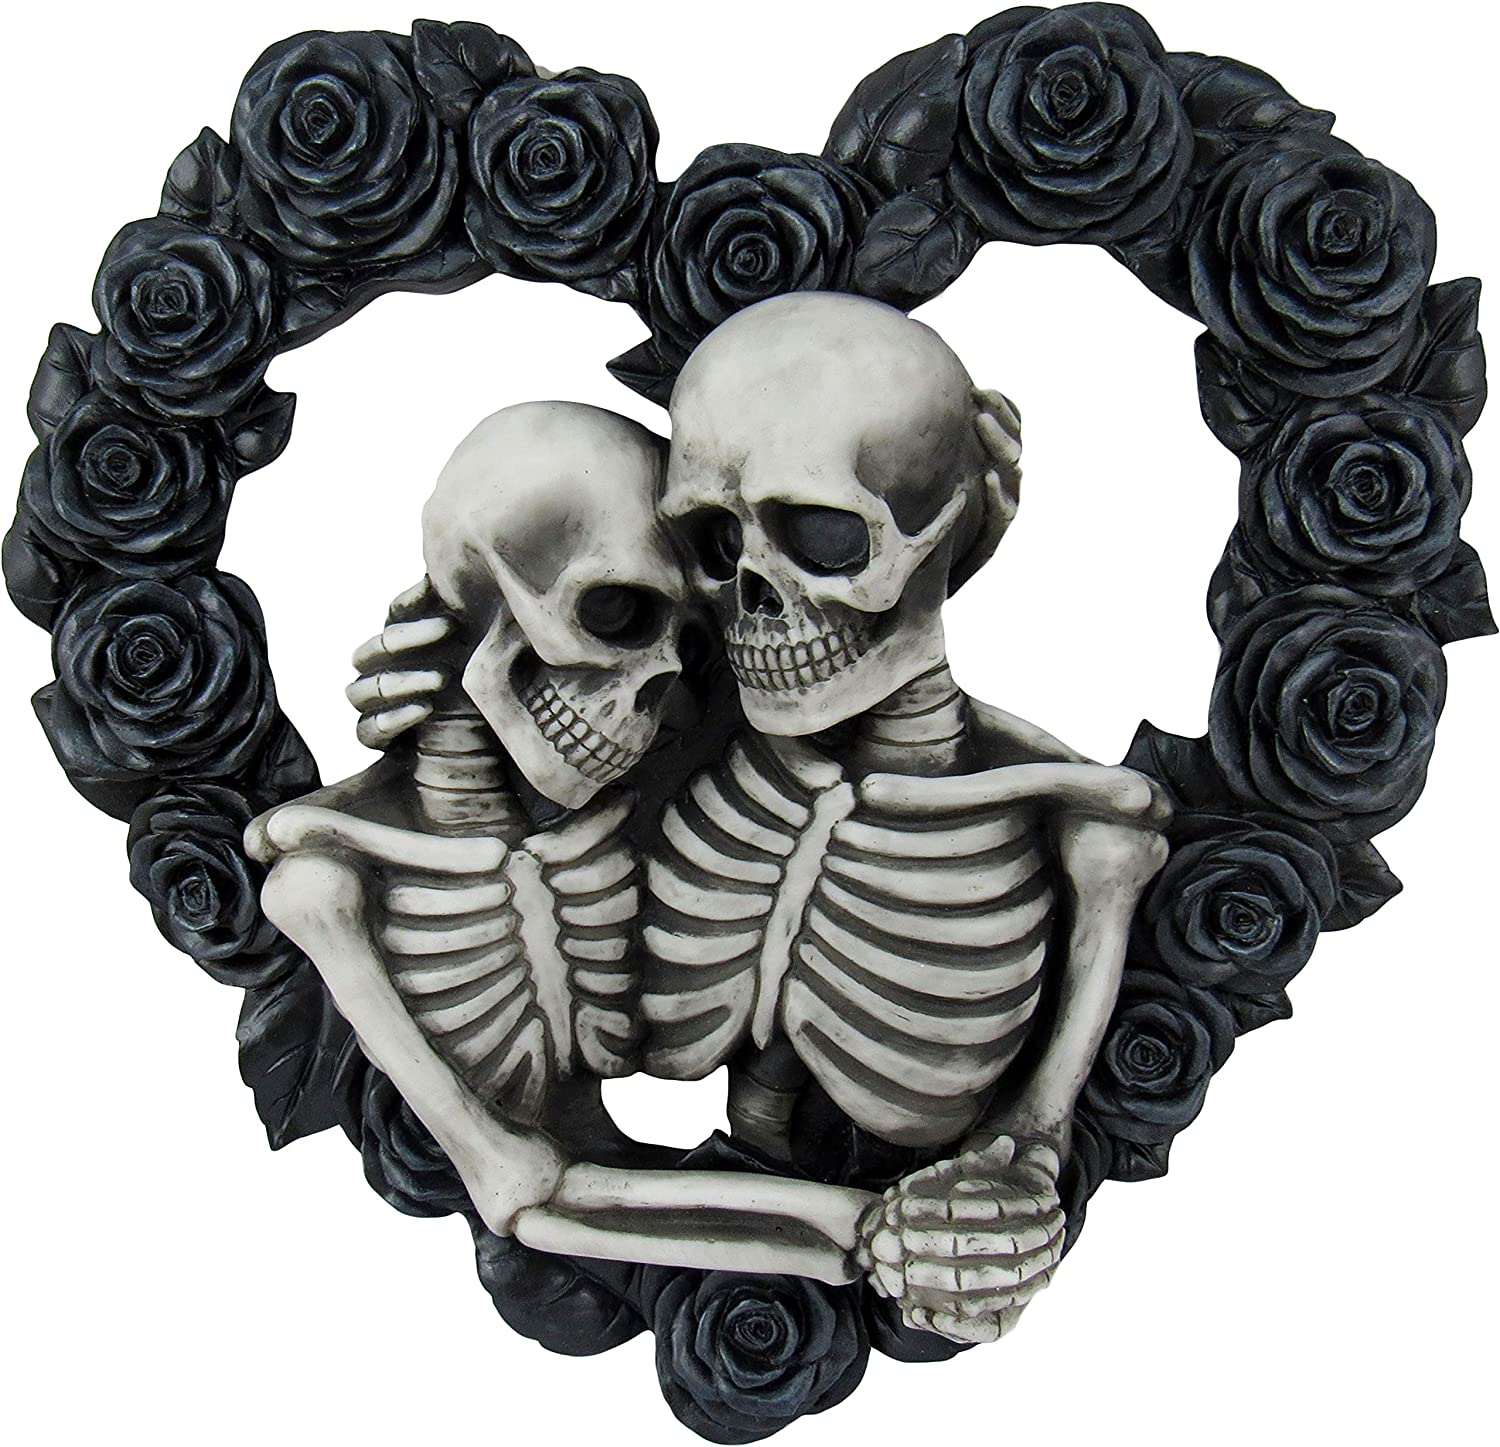 DWK - Our Love Sale SALE% OFF is All items in the store Eternal Gothic Skeleton Lovers Beautiful Emb